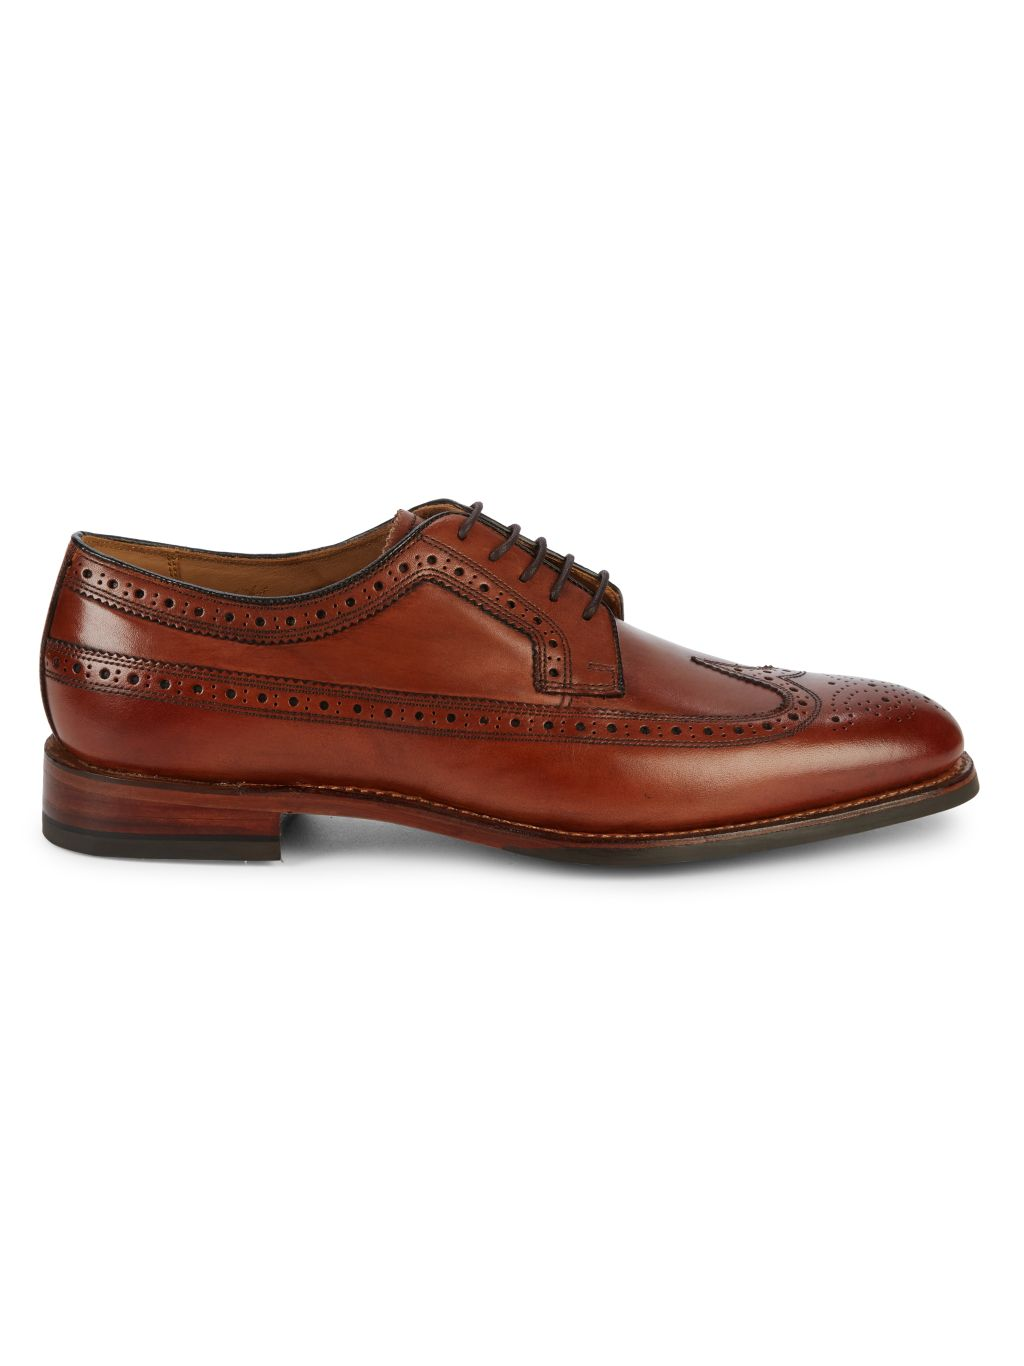 Nettleton Leather Oxford Brogues